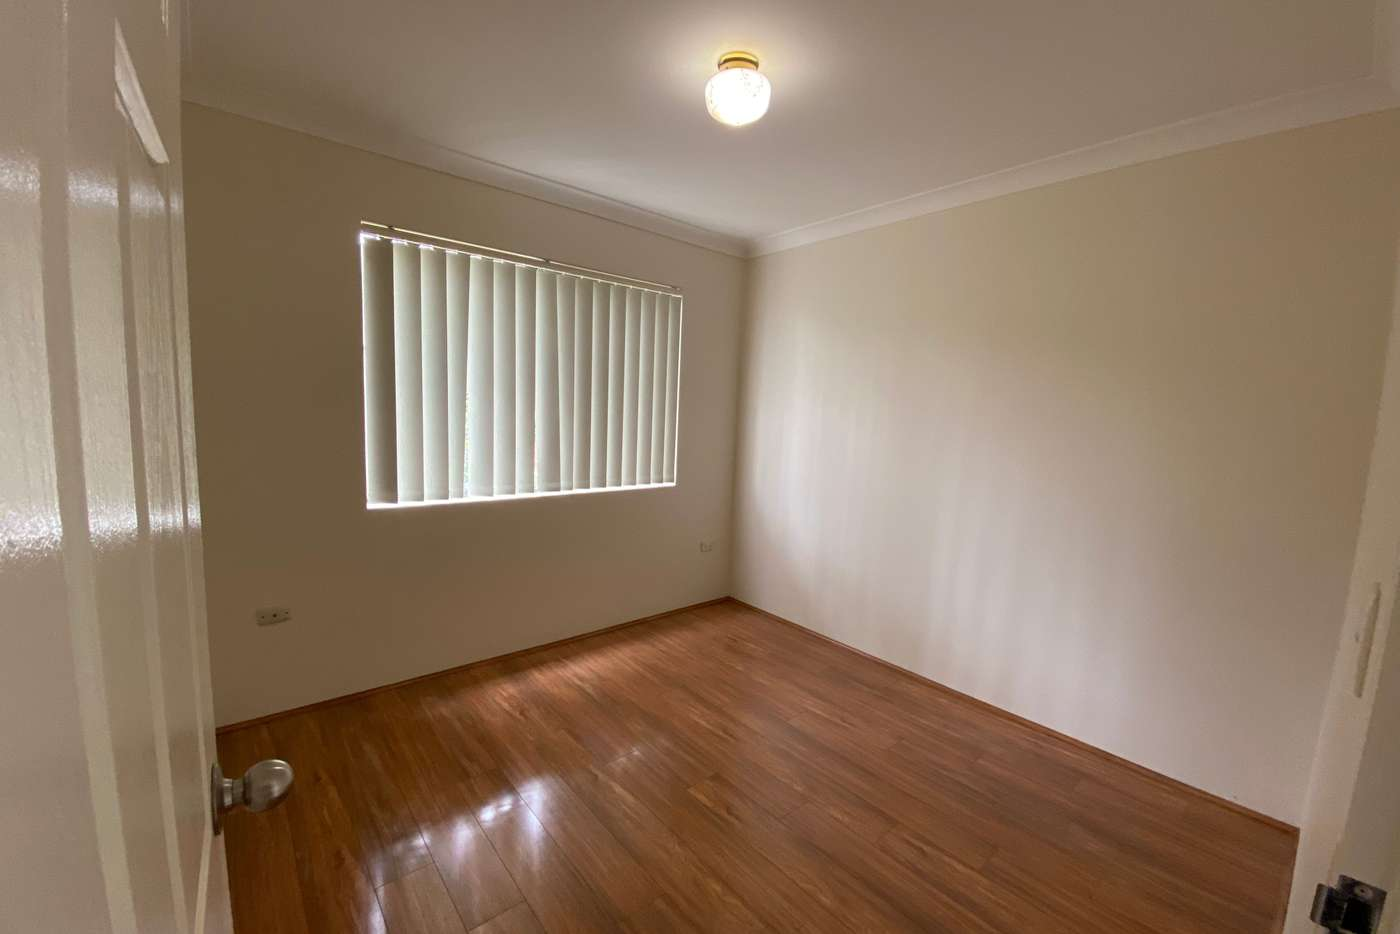 Sixth view of Homely apartment listing, 6/237 Targo Road, Toongabbie NSW 2146